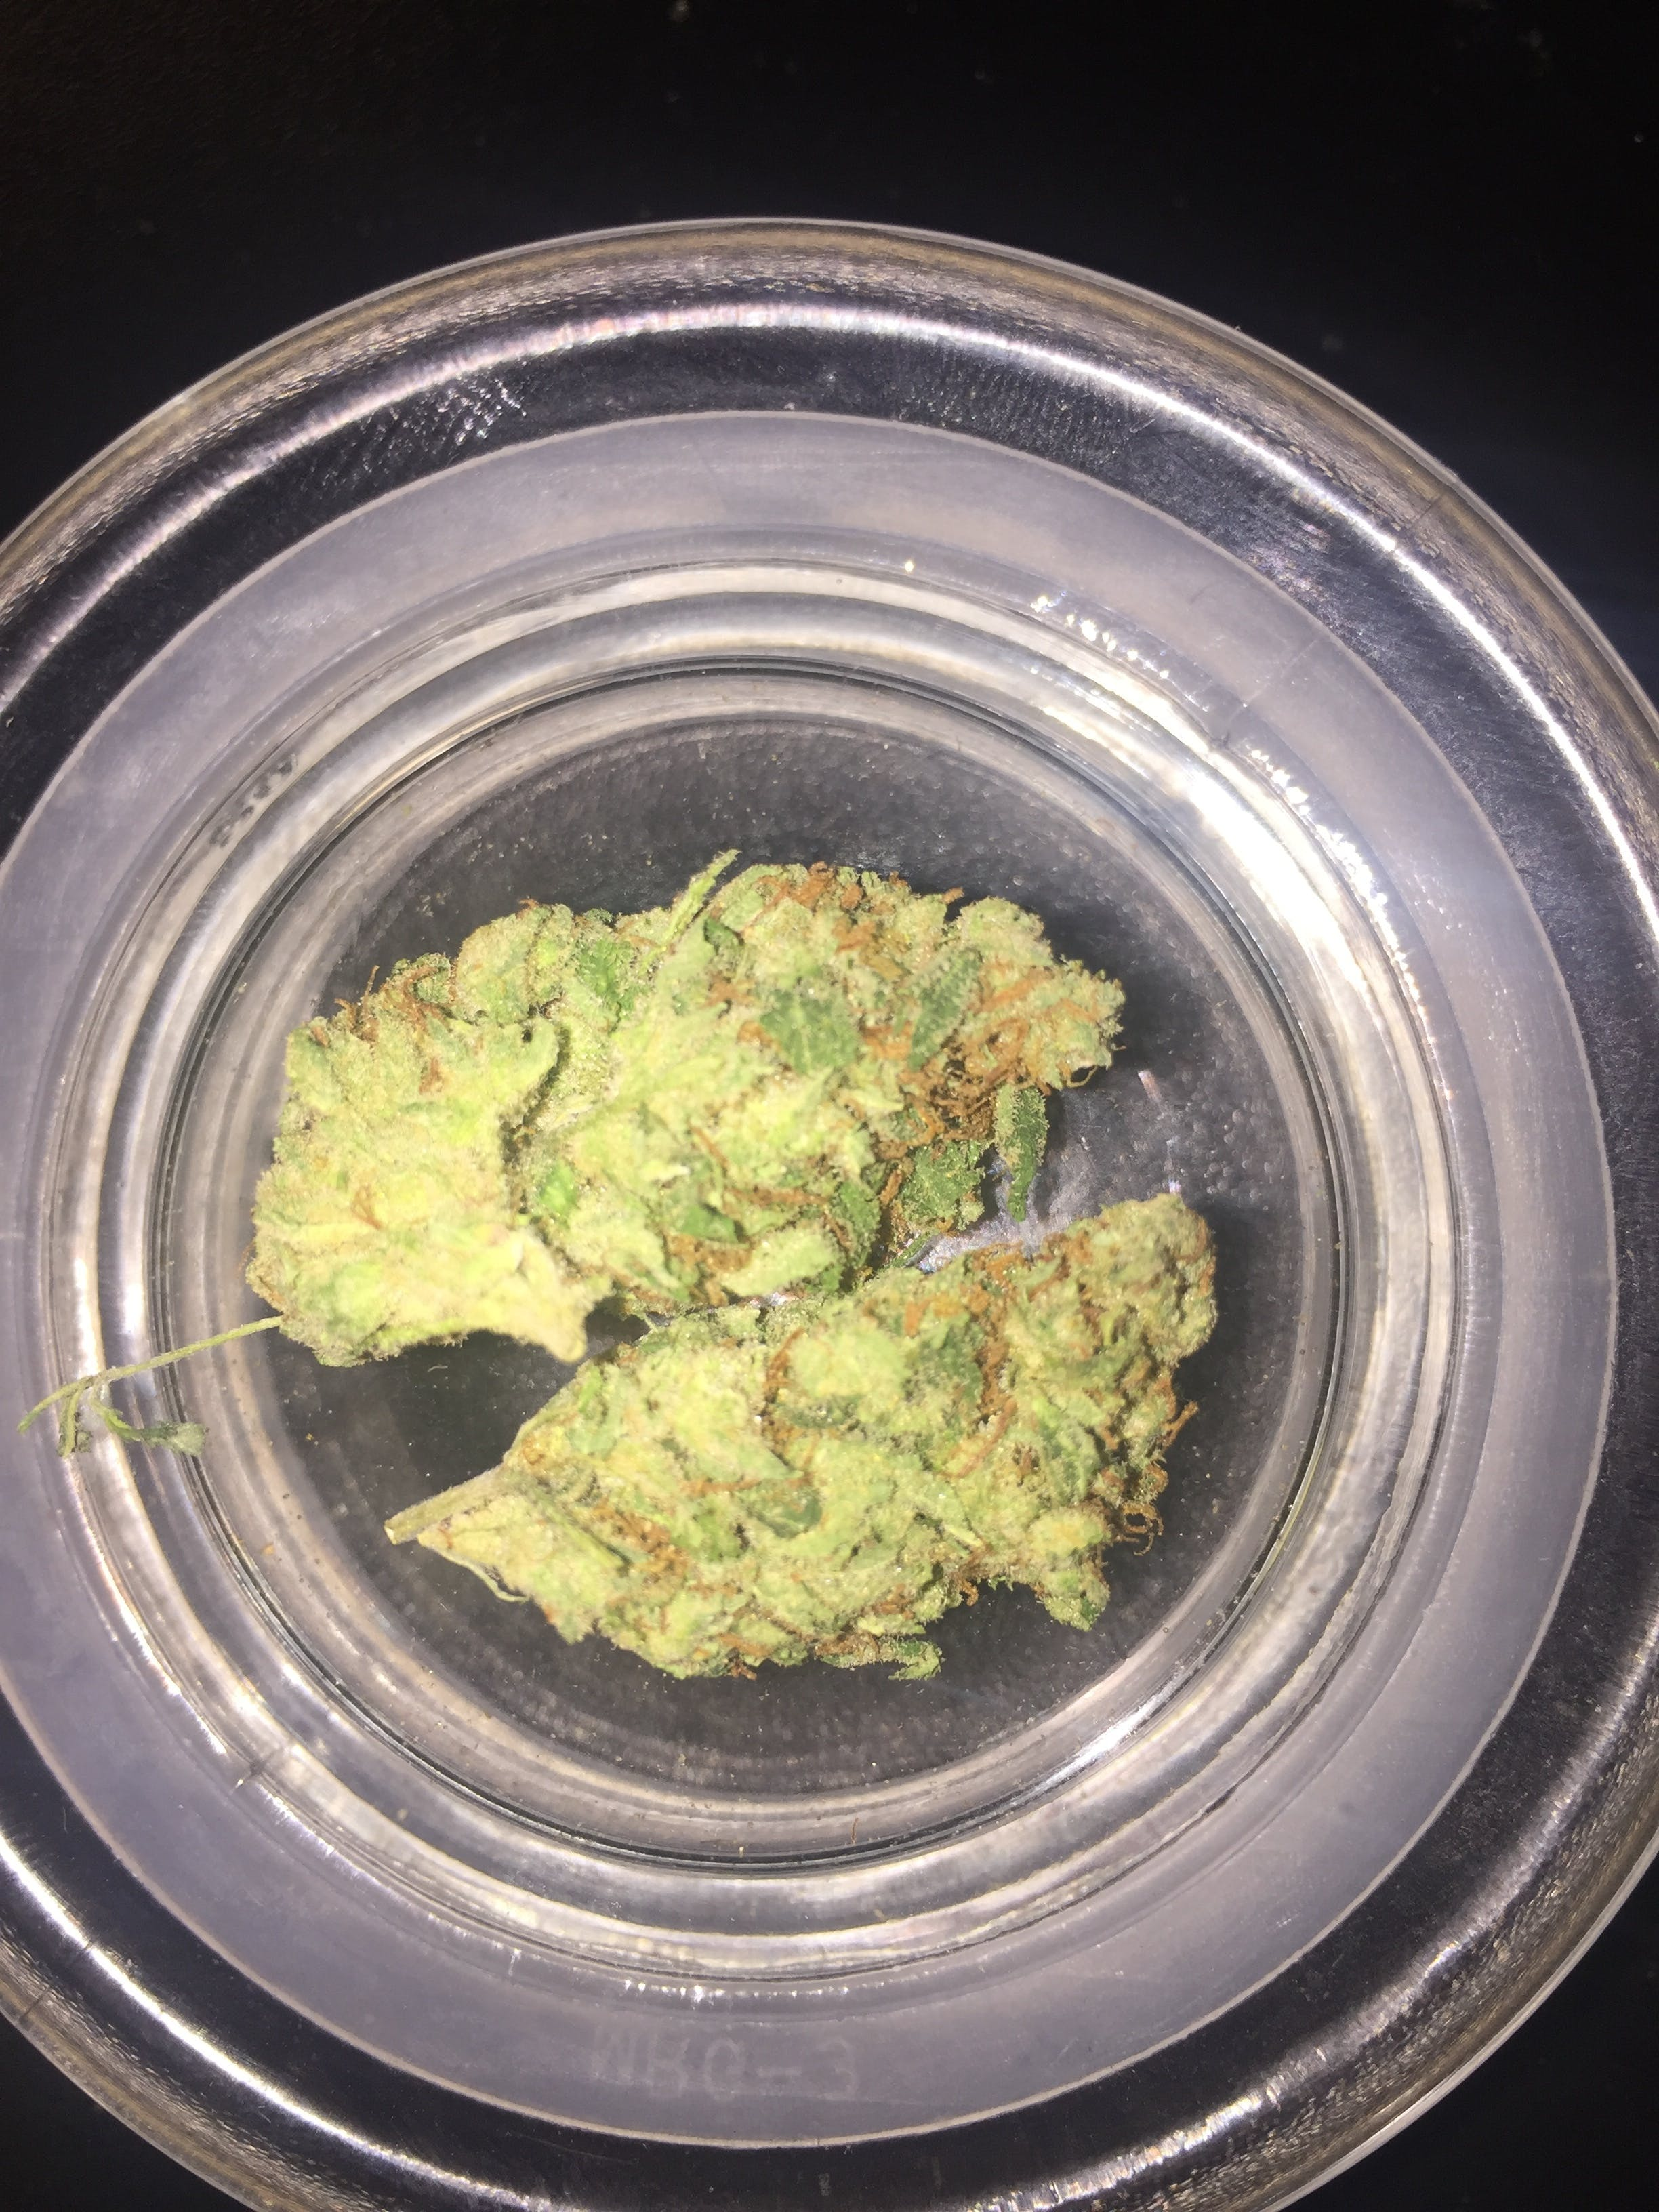 marijuana-dispensaries-house-of-zen-in-detroit-cornbread-og